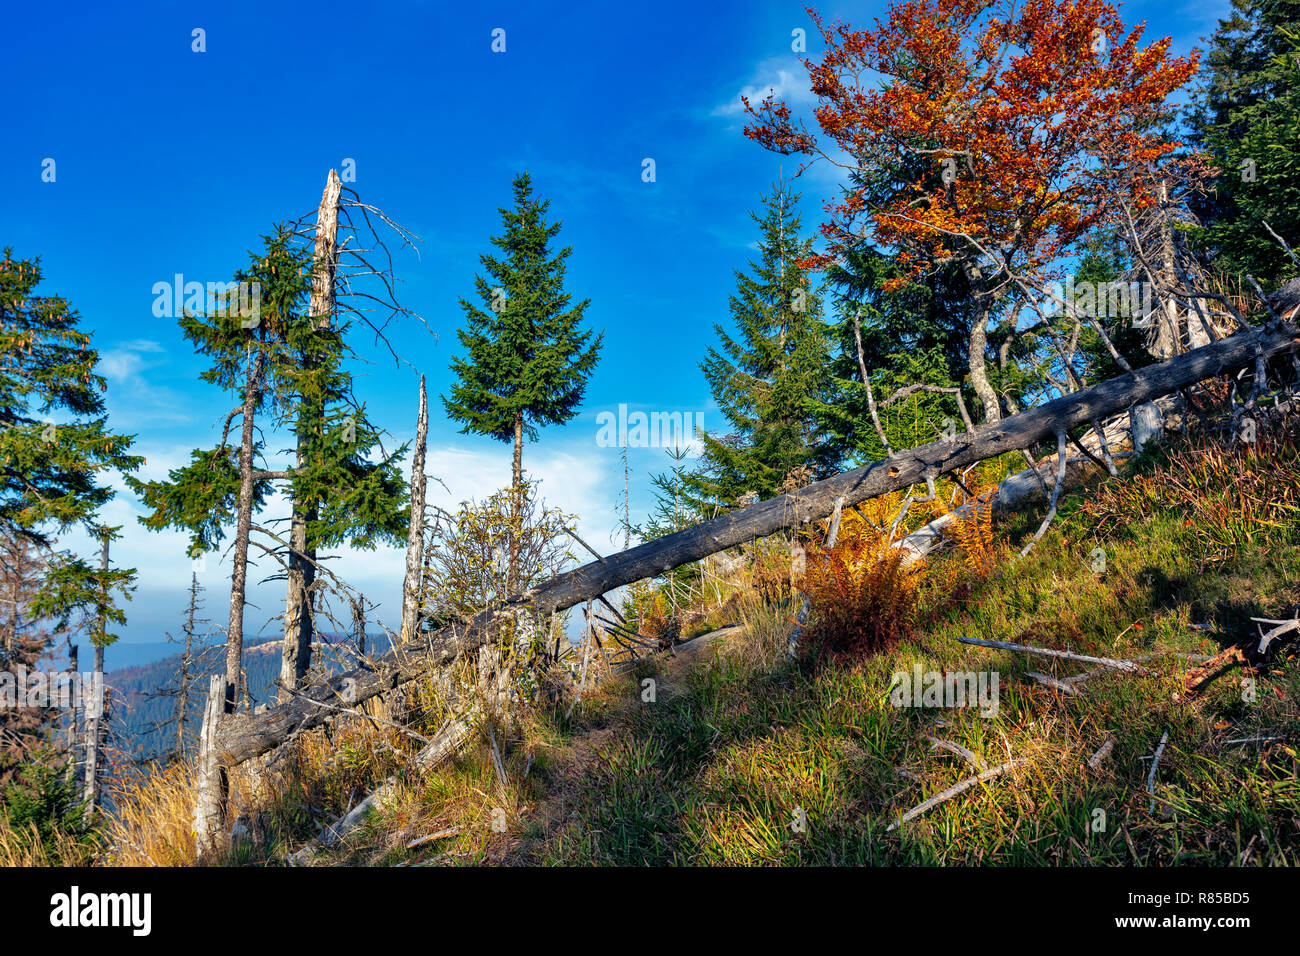 Deadwood in the spell forest - Stock Image